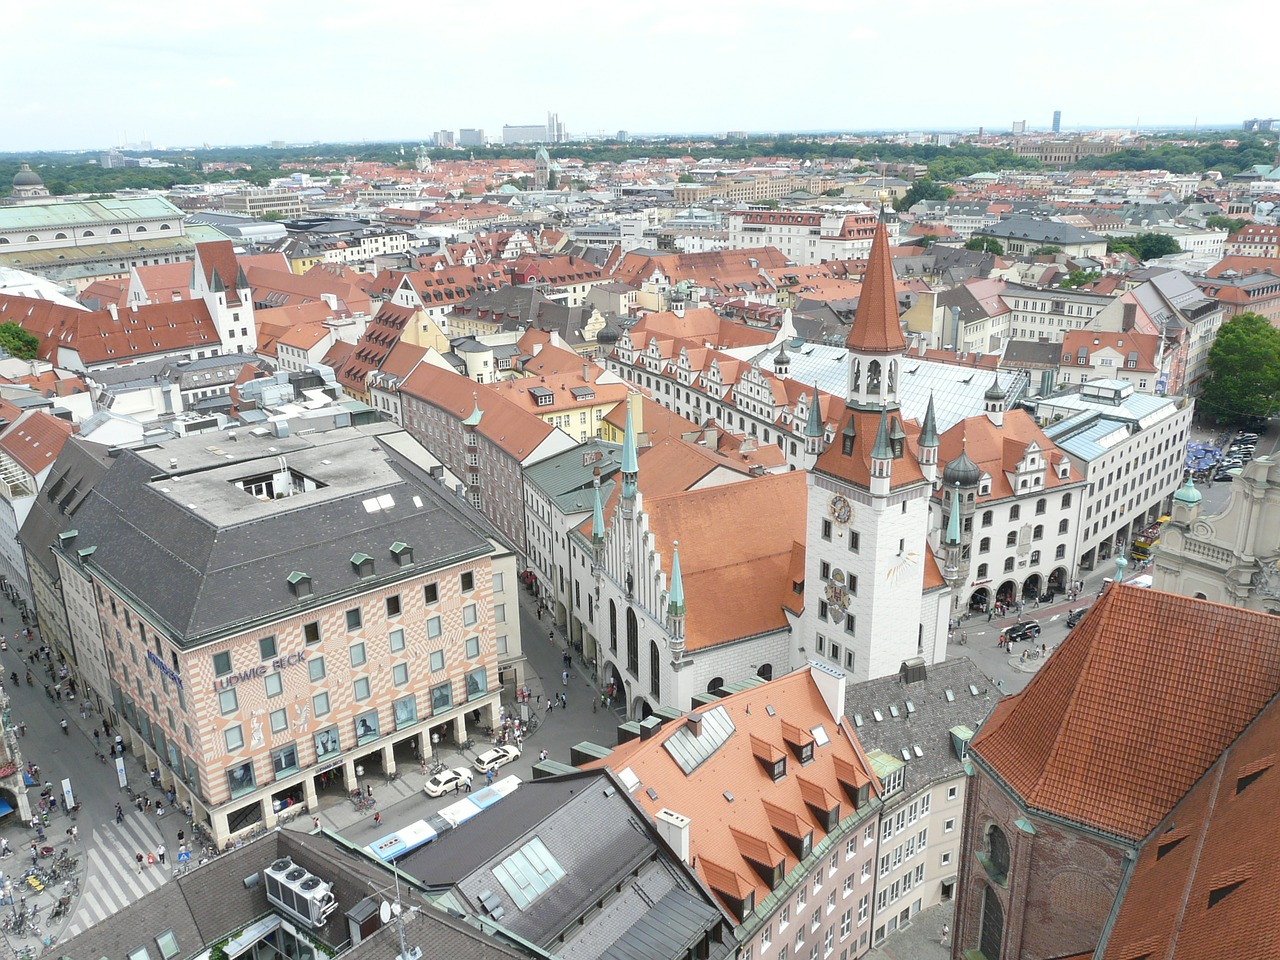 munich,city,outlook,vision,panorama,town center,center,free pictures, free photos, free images, royalty free, free illustrations, public domain